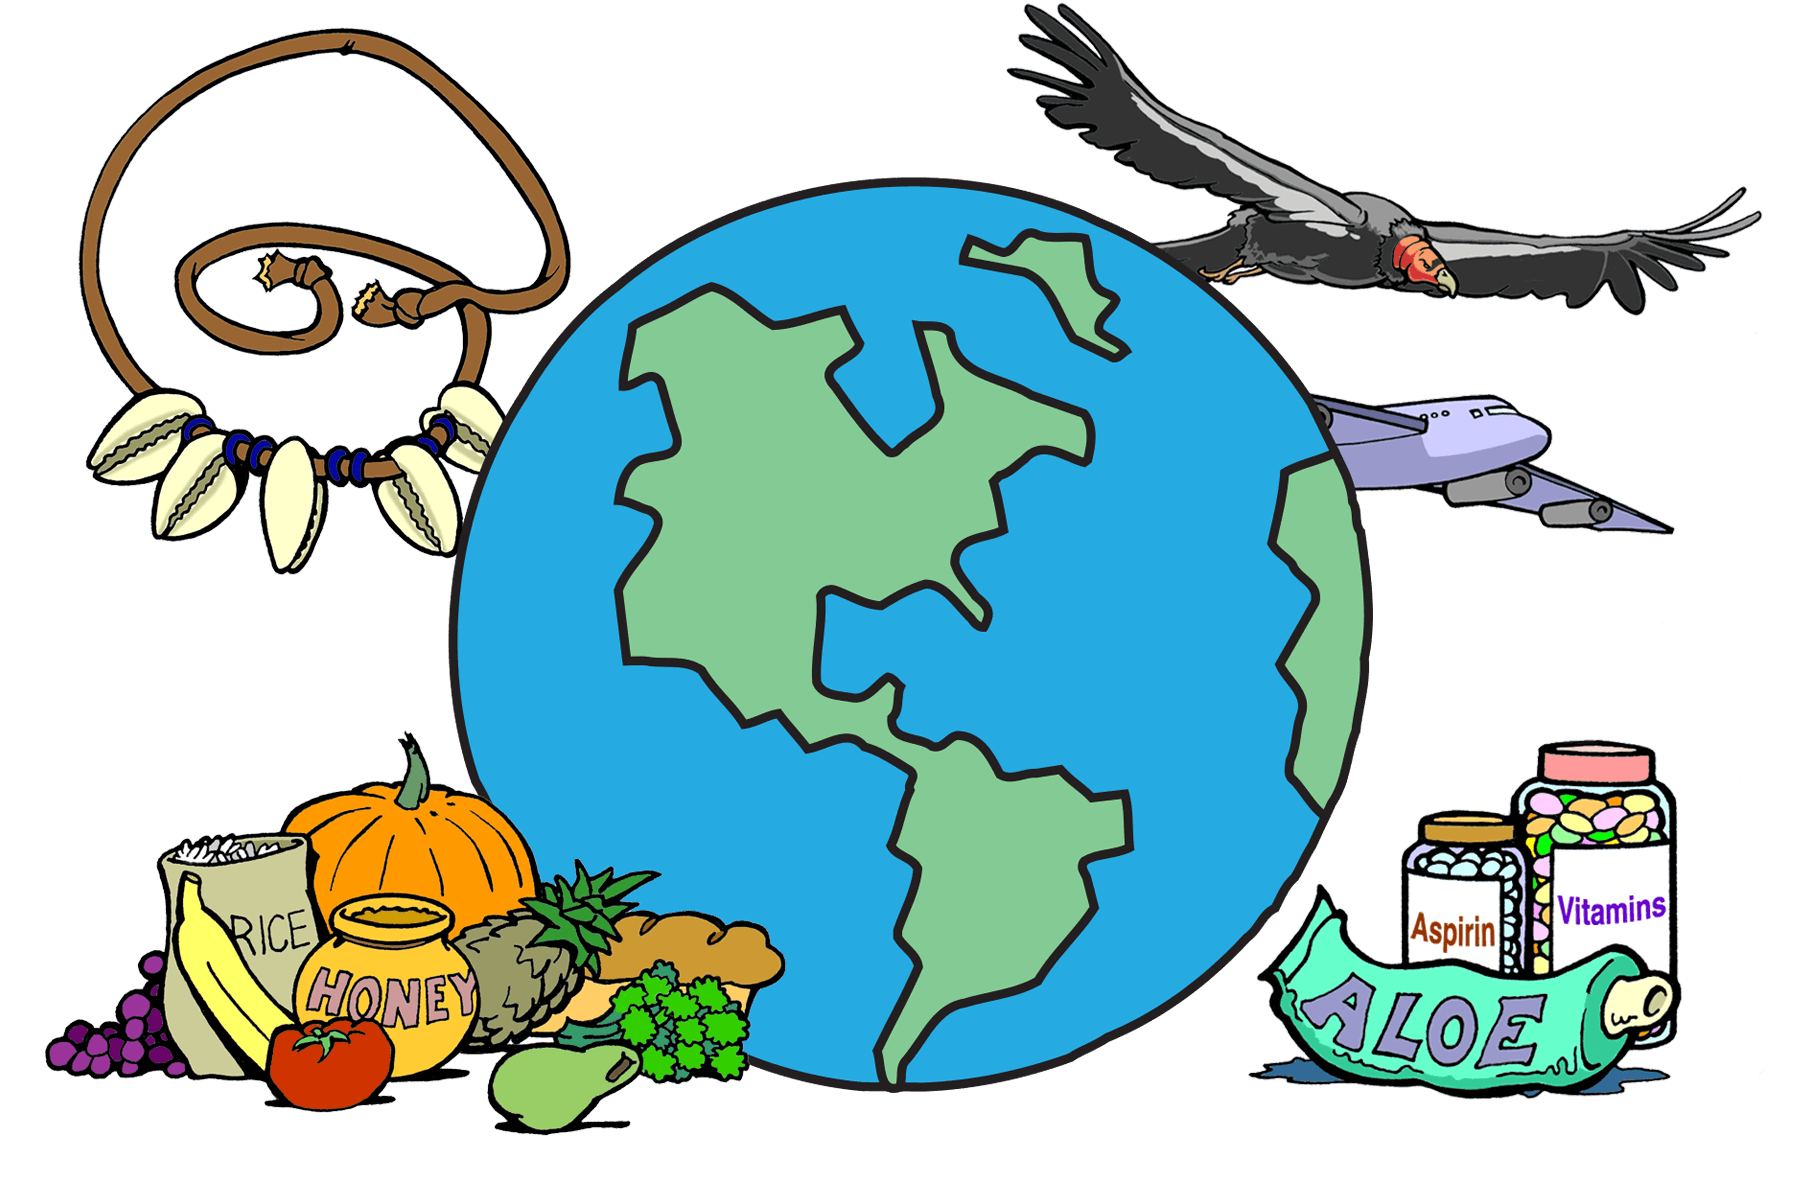 drawing of earth, surrounded by medicine, a cowry shell necklace, a condor, an airplane, and a pile of rice, bread, honey, fruits and vegetables.